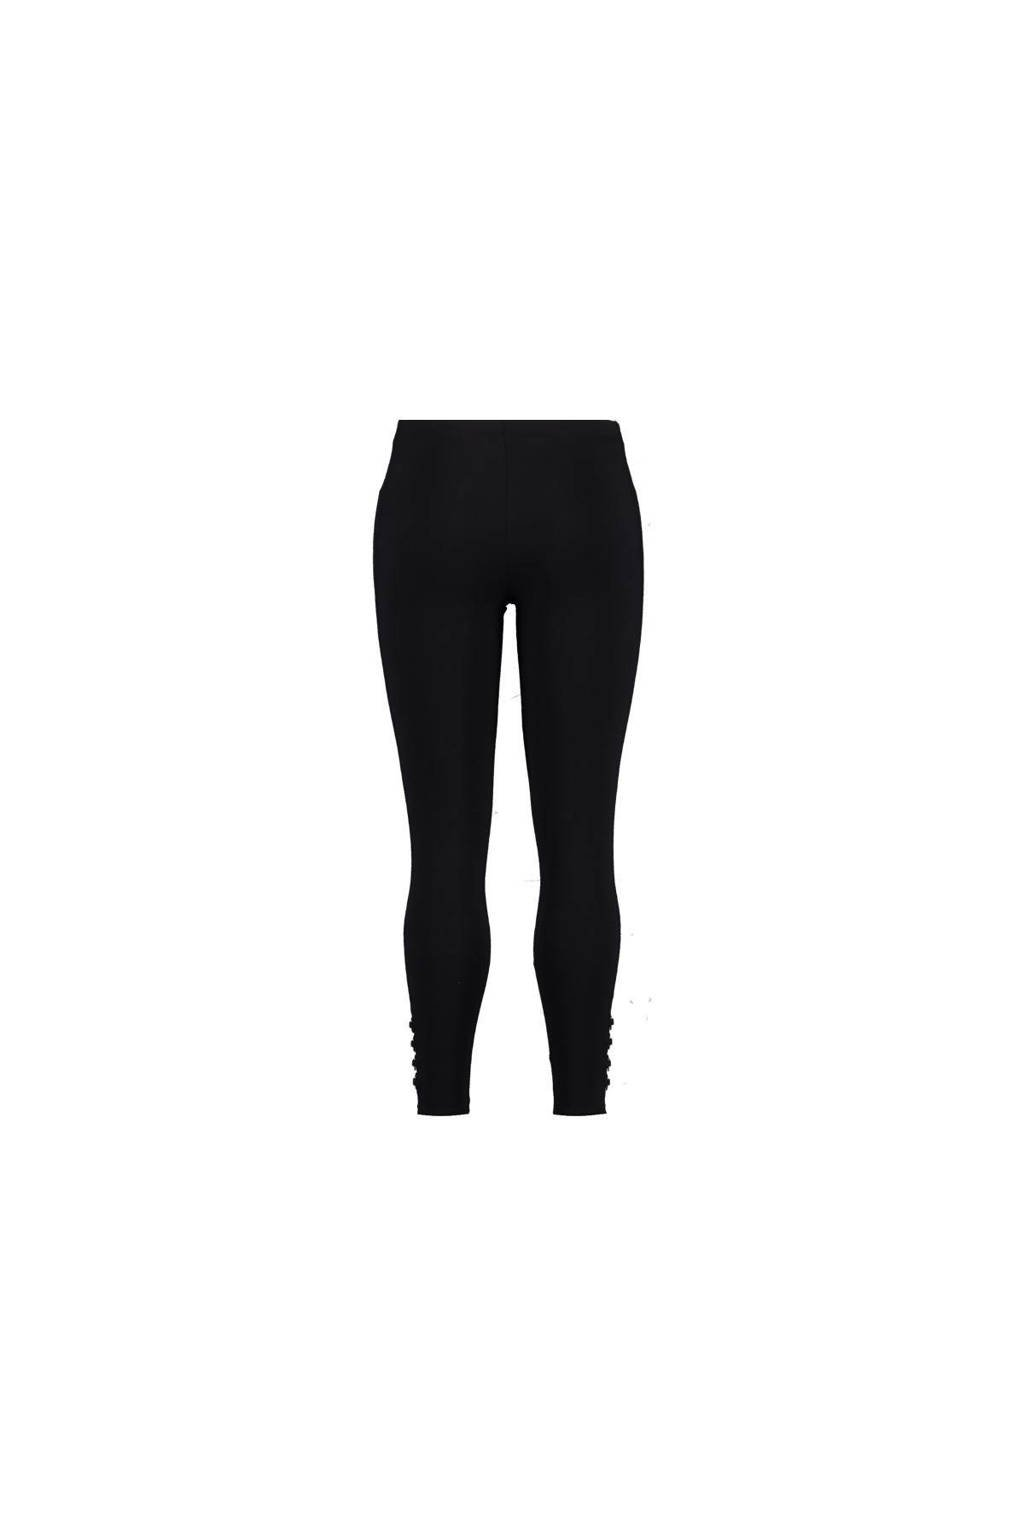 MS Mode legging zwart, Zwart